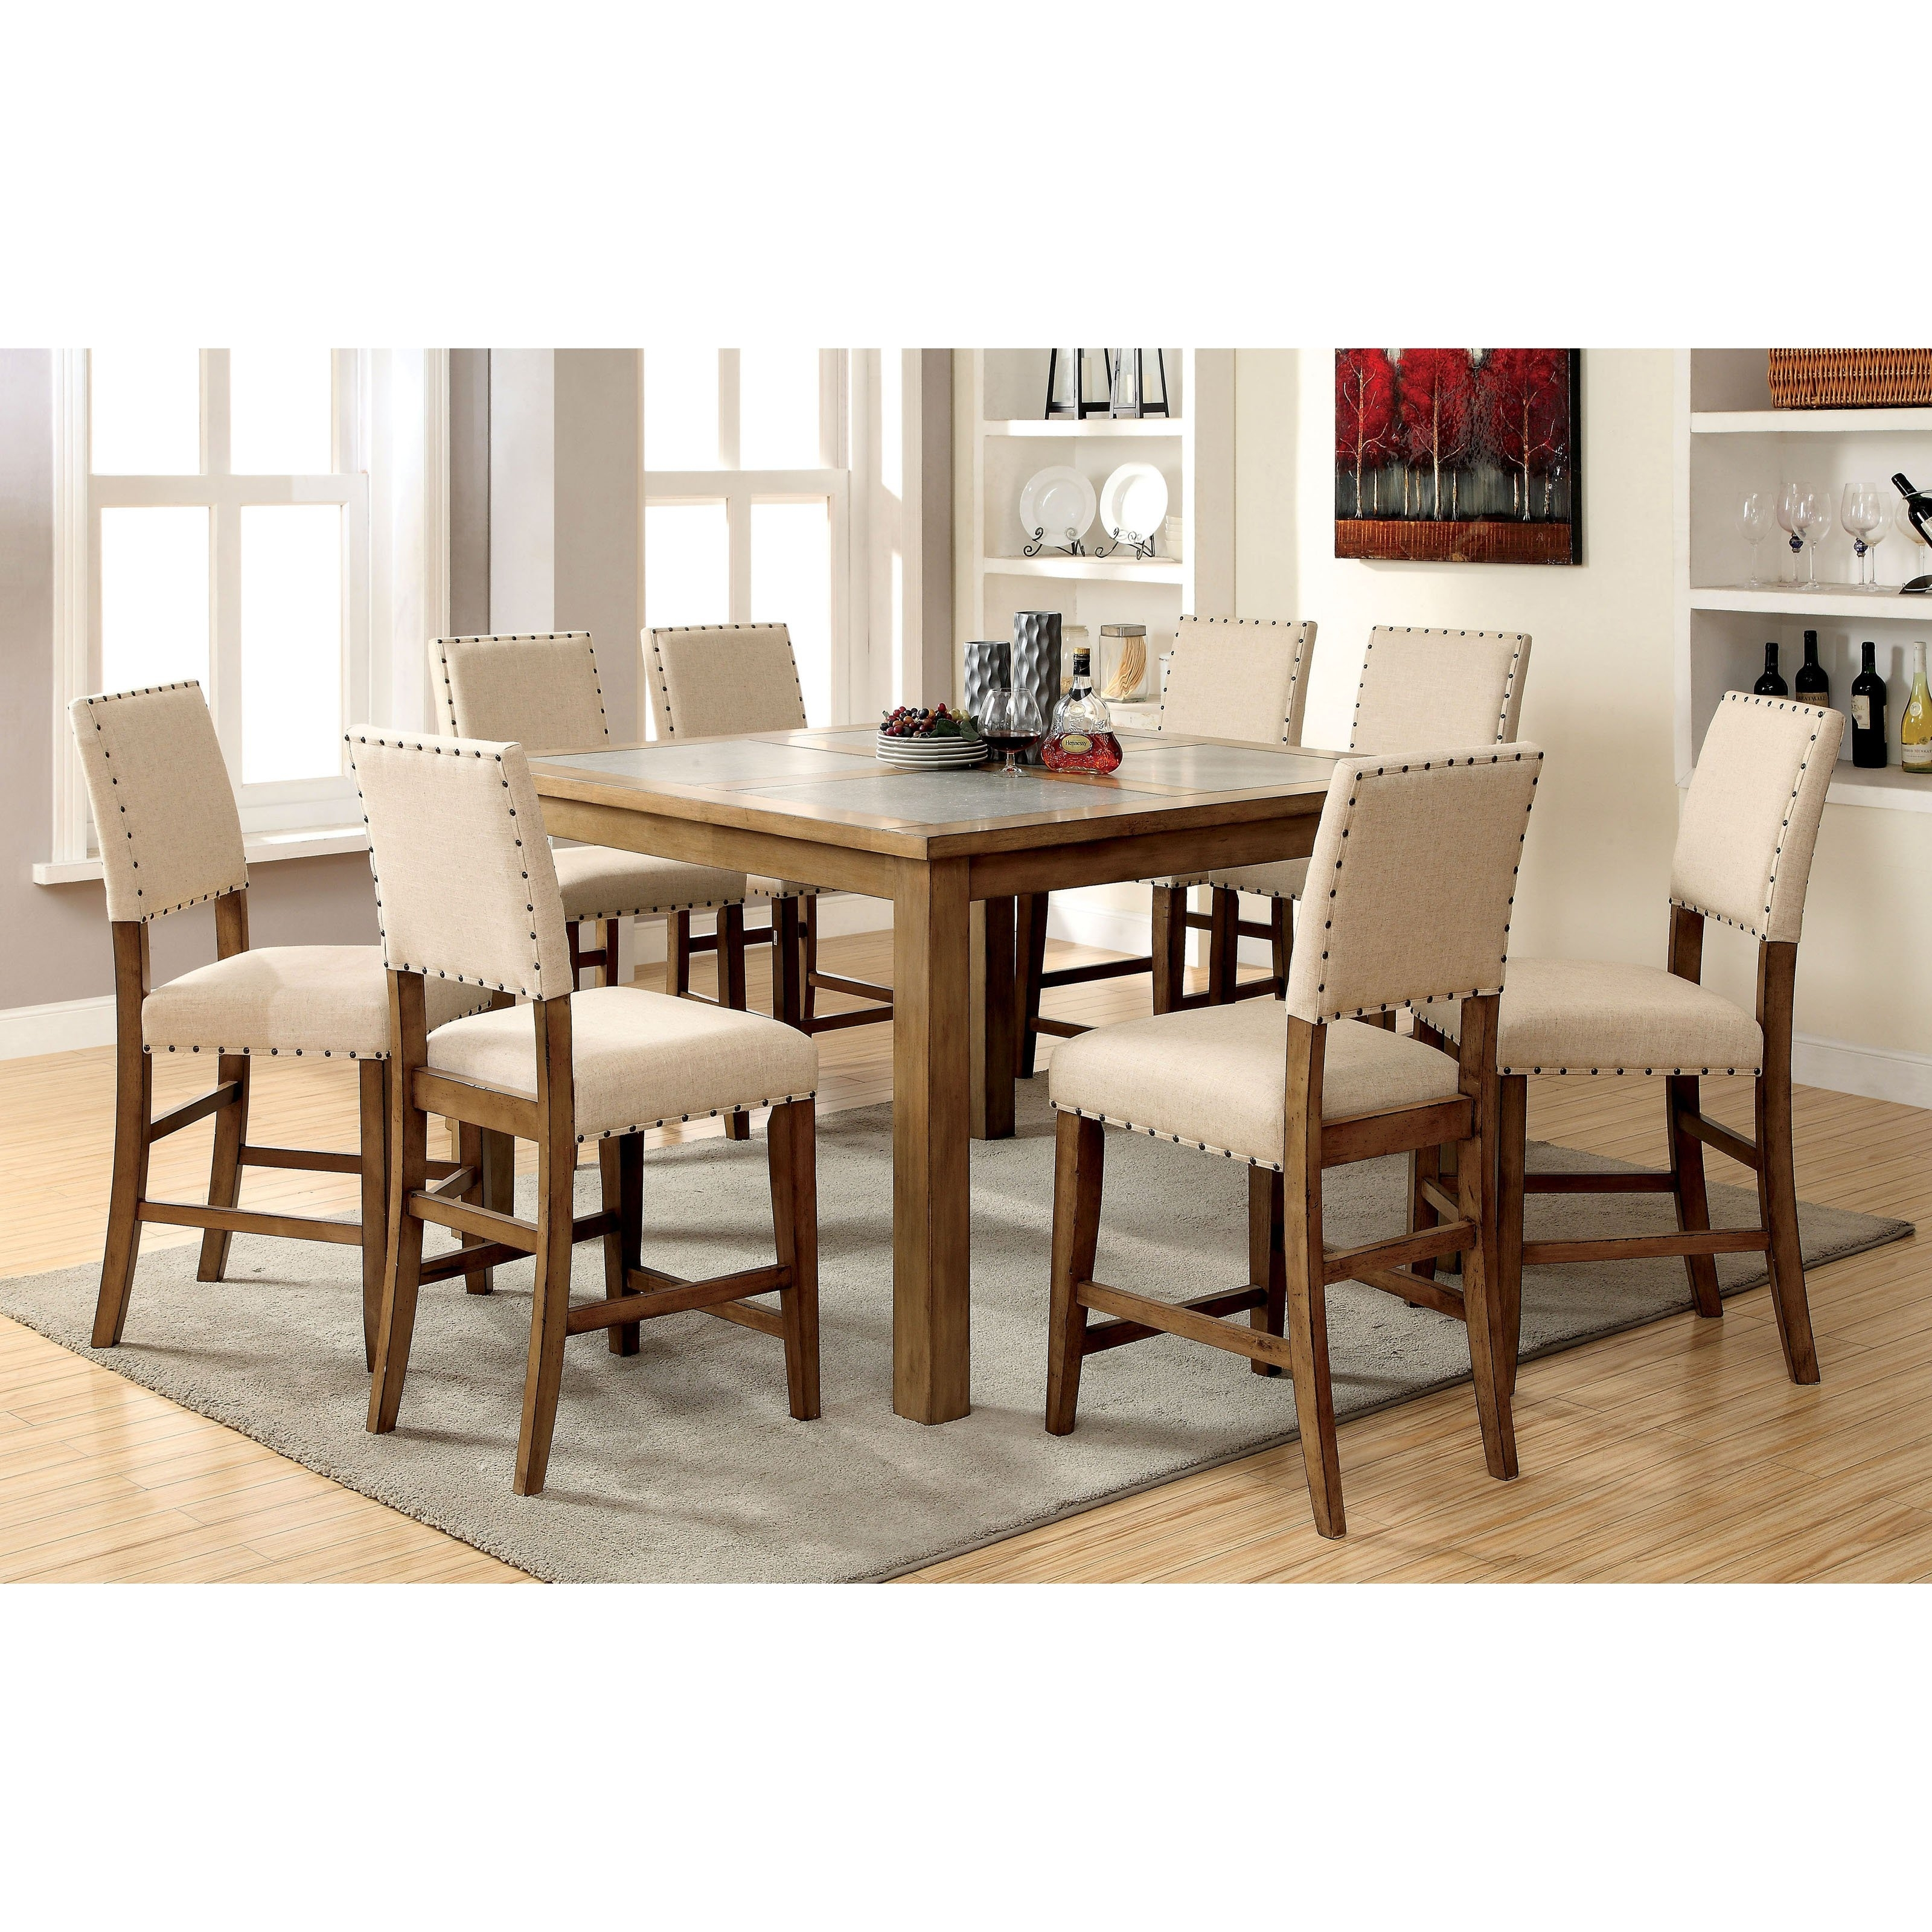 Cheery Caira Piece Extension Set Back Chairs Caira Piece Extension For Most Popular Chapleau Ii 9 Piece Extension Dining Table Sets (Image 8 of 20)